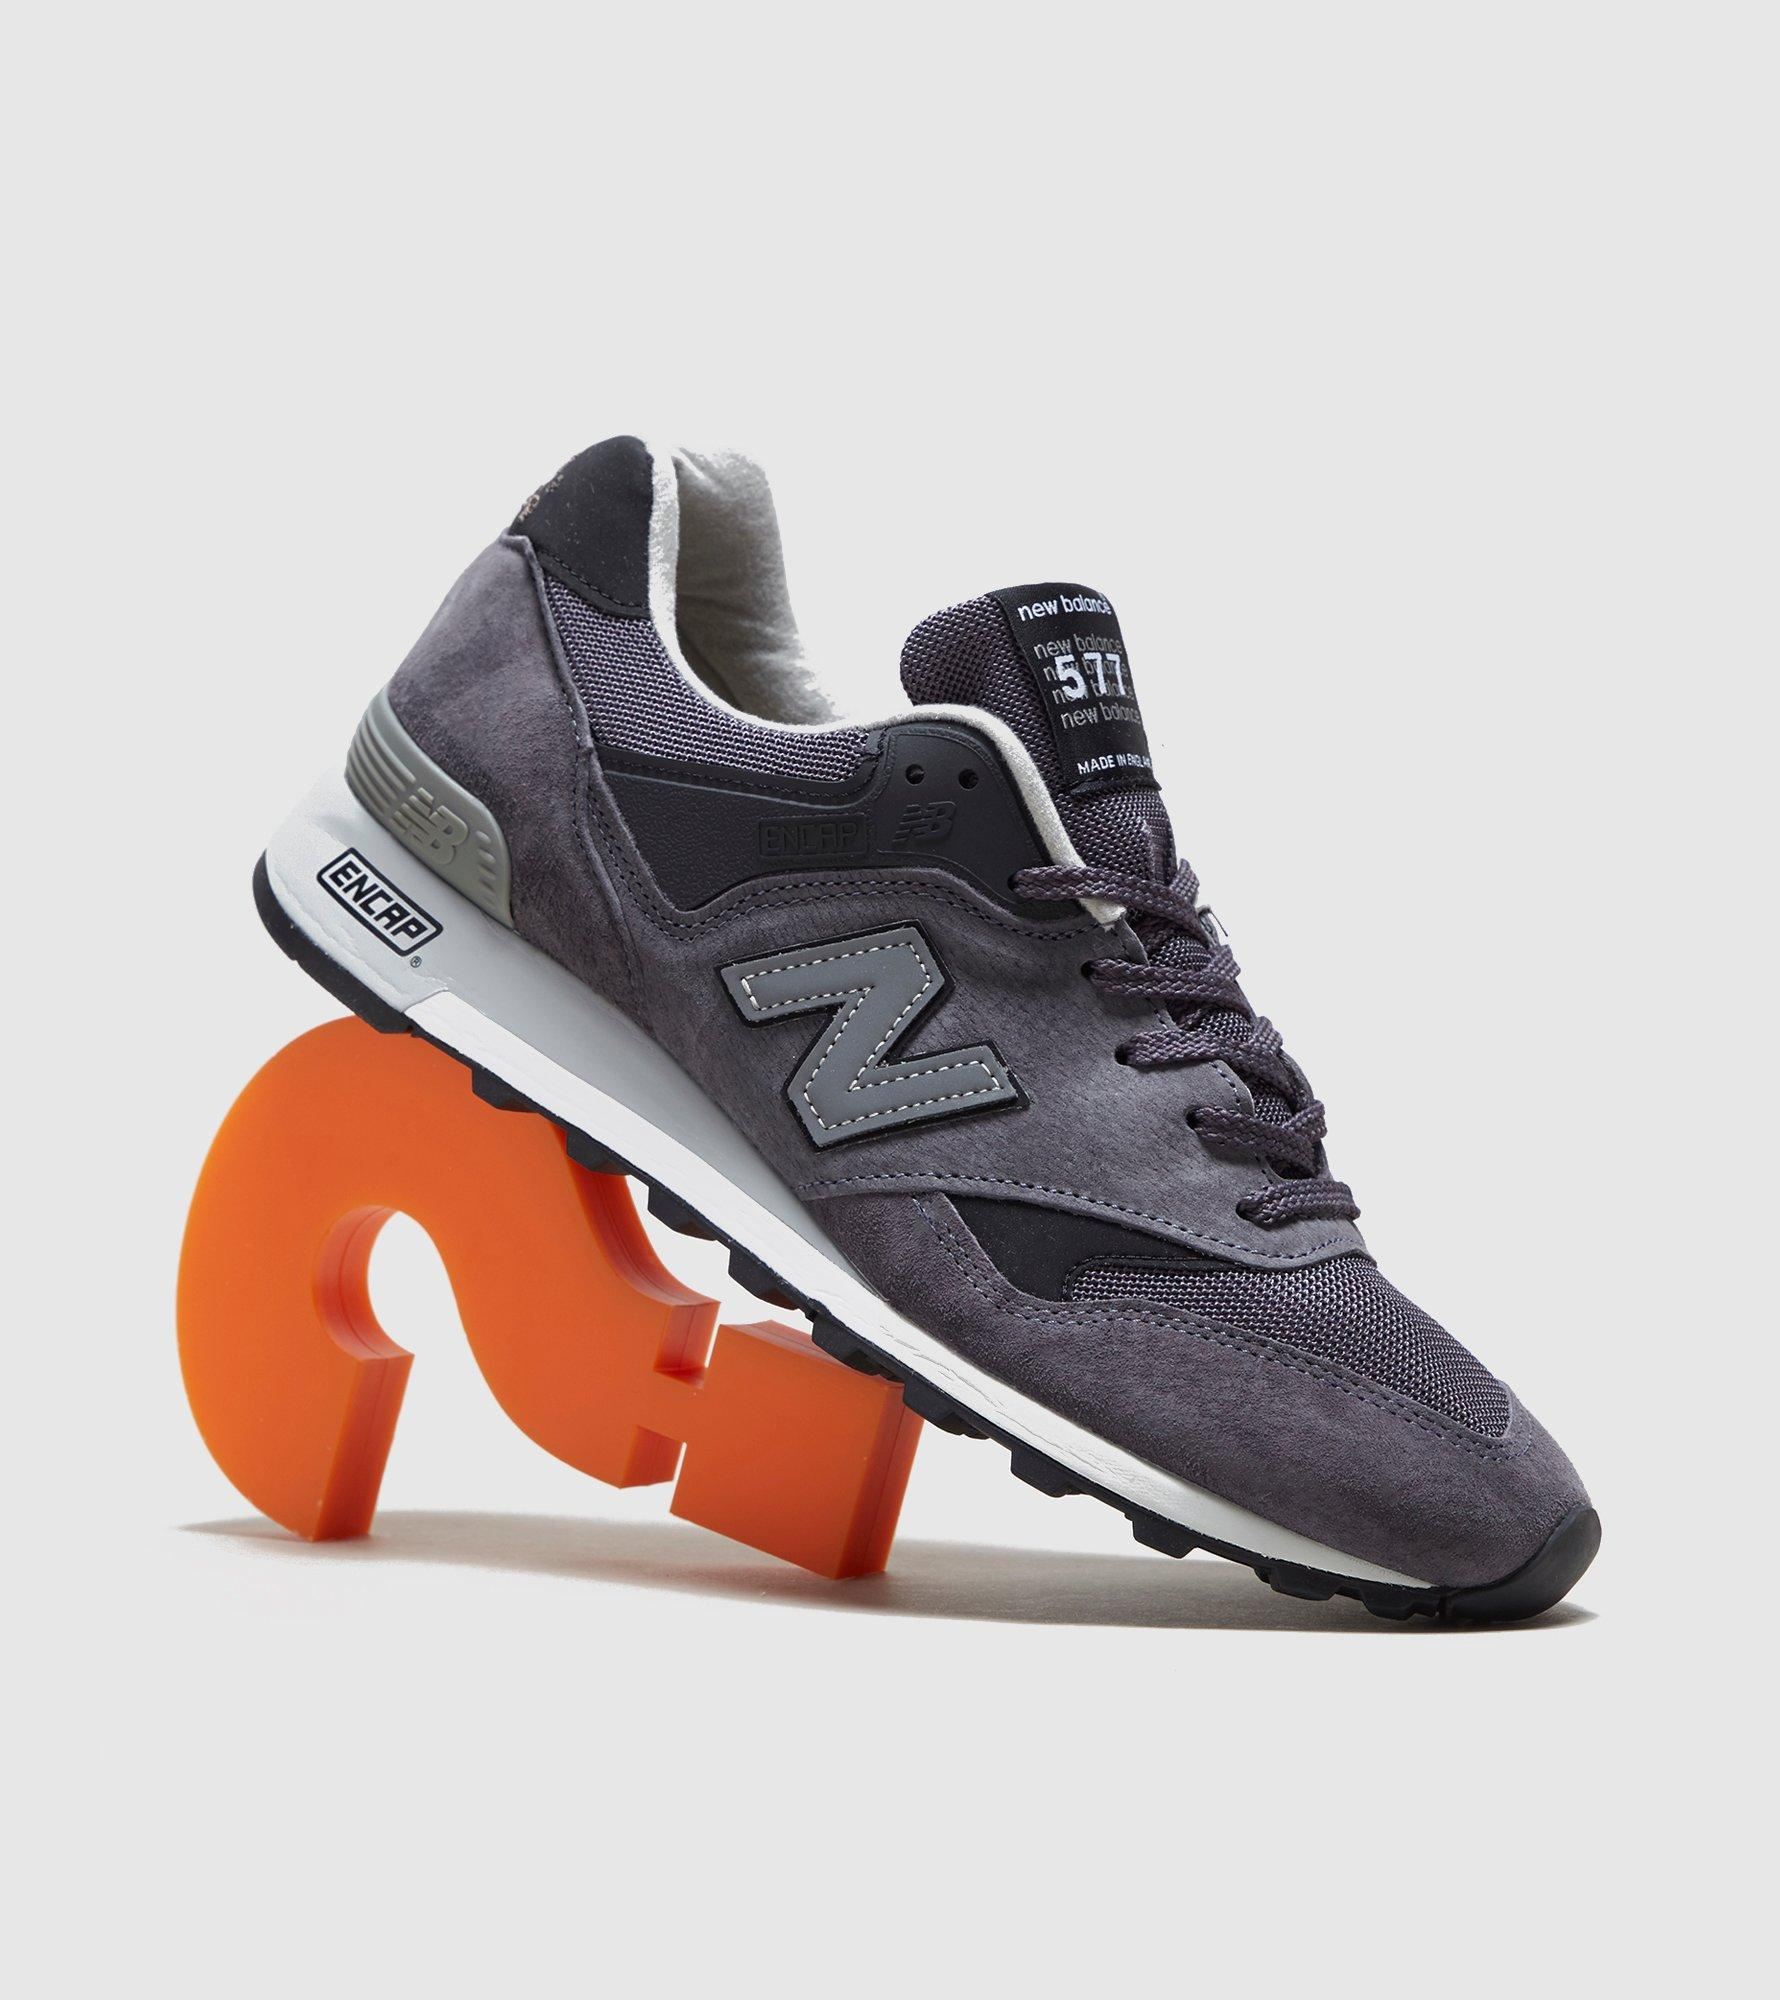 Automático Aviación por no mencionar  Buy > new balance 577 made in uk Limit discounts 50% OFF